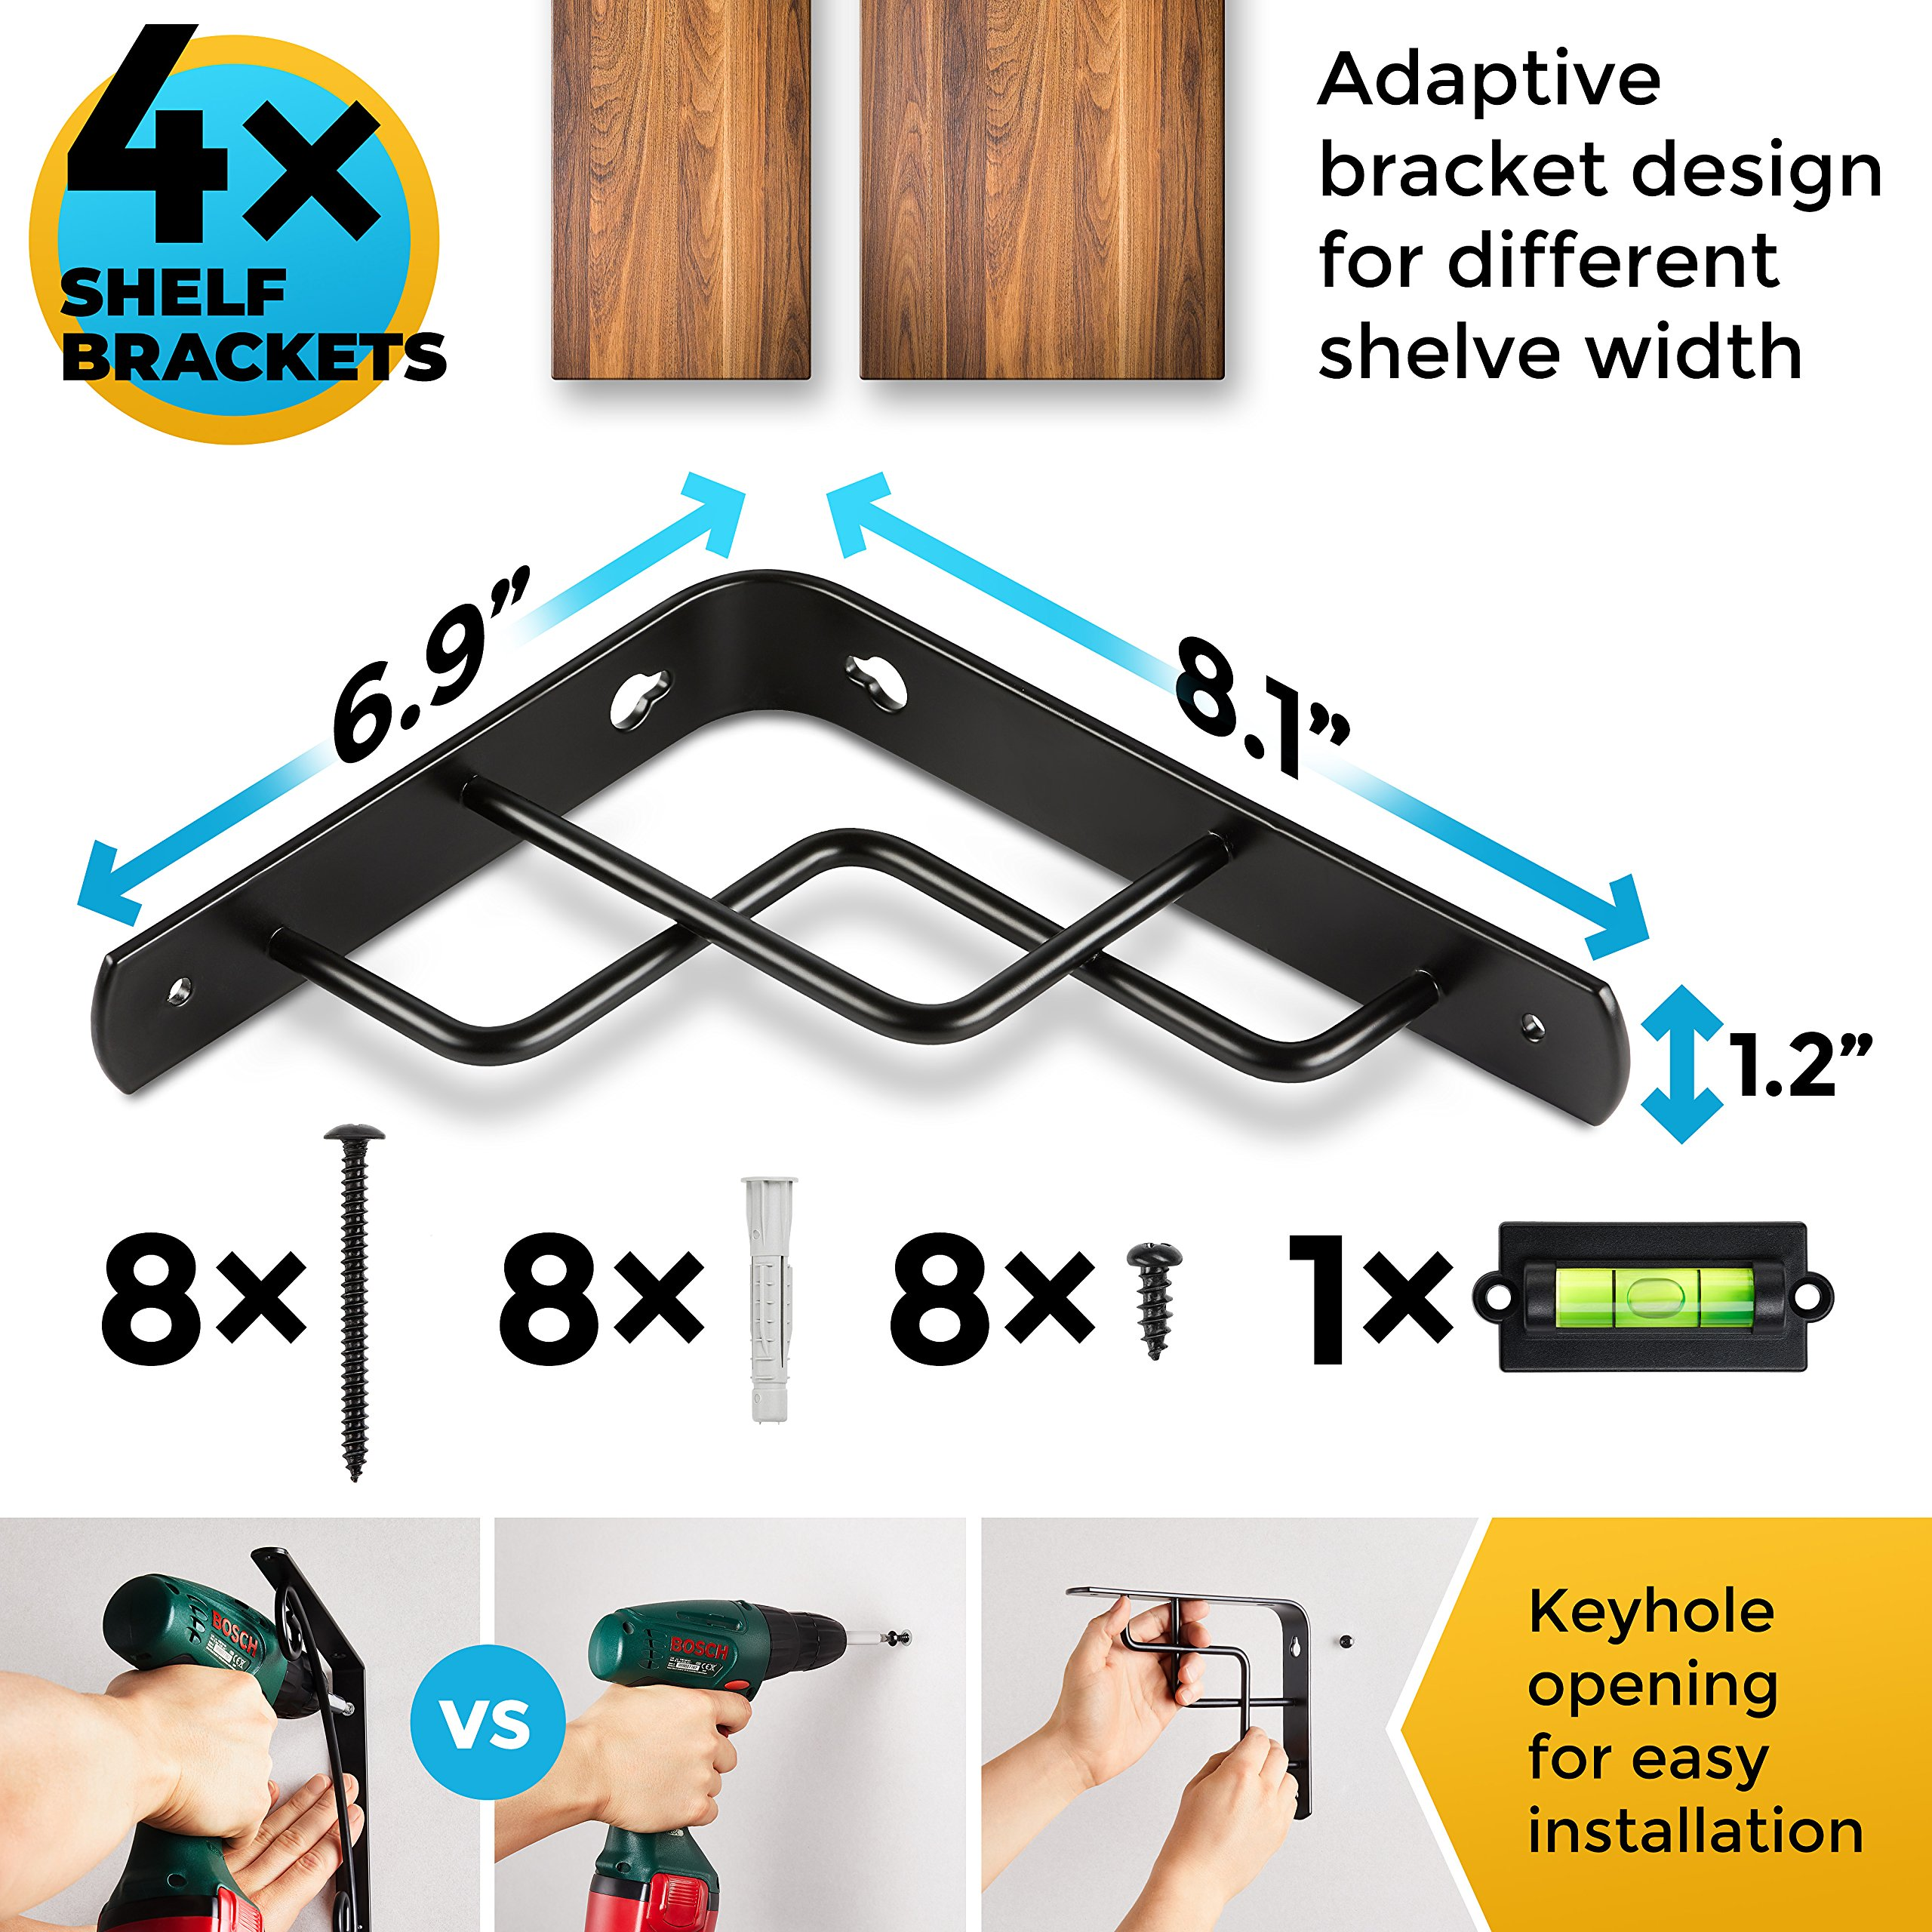 CHOOK – L Shape Shelf Brackets, Heavy Duty, Modern, Decorative | Fit 7 to 12 Inch Shelves | 4 Pack with Screws and Anchors | Semi Industrial Design | for Home or Workplace | Steel Metal black by Chook Creations (Image #3)